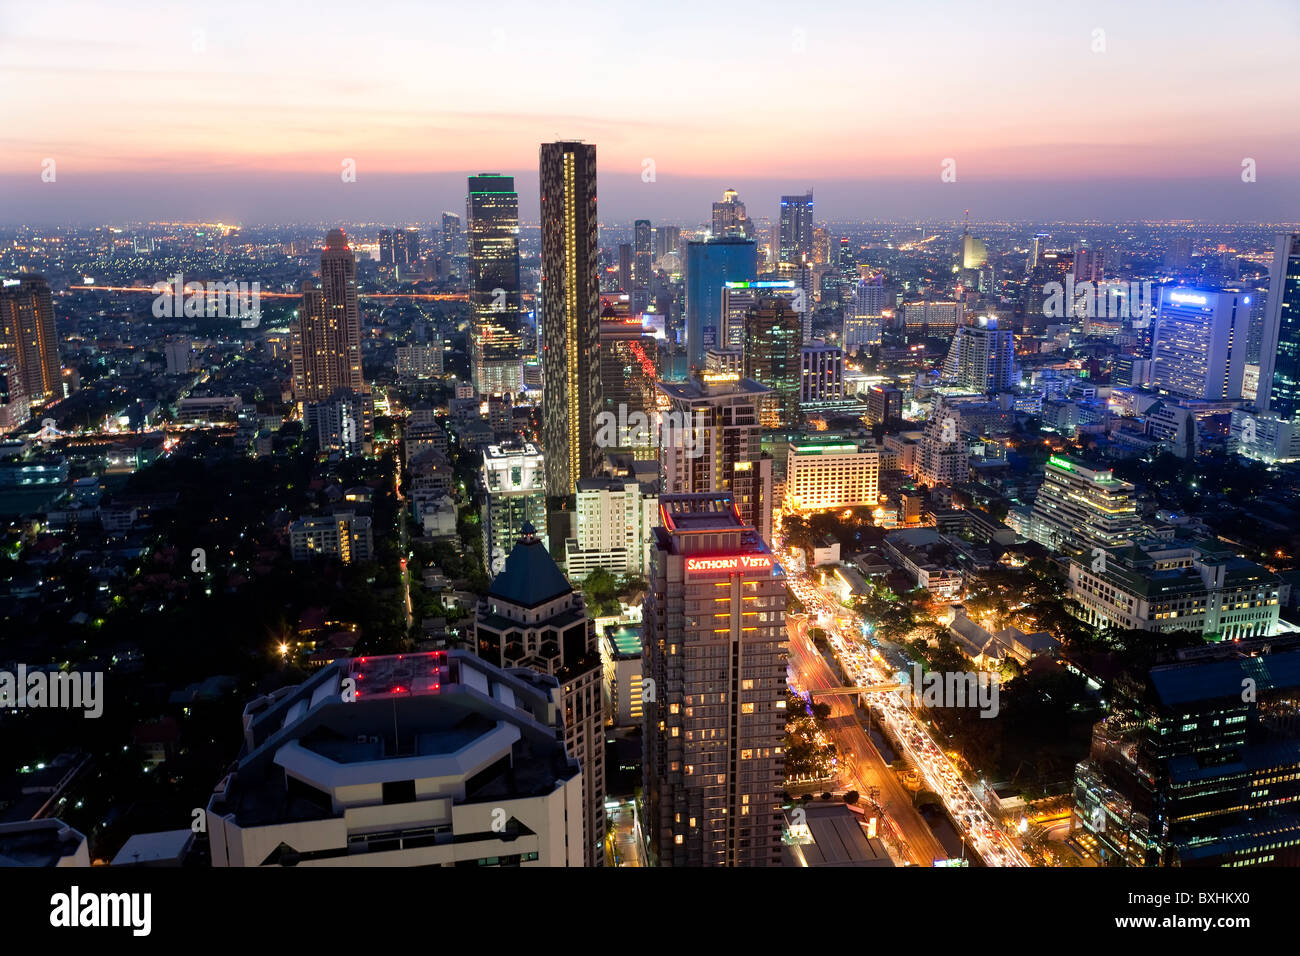 View of business district, Bangkok, Thailand - Stock Image